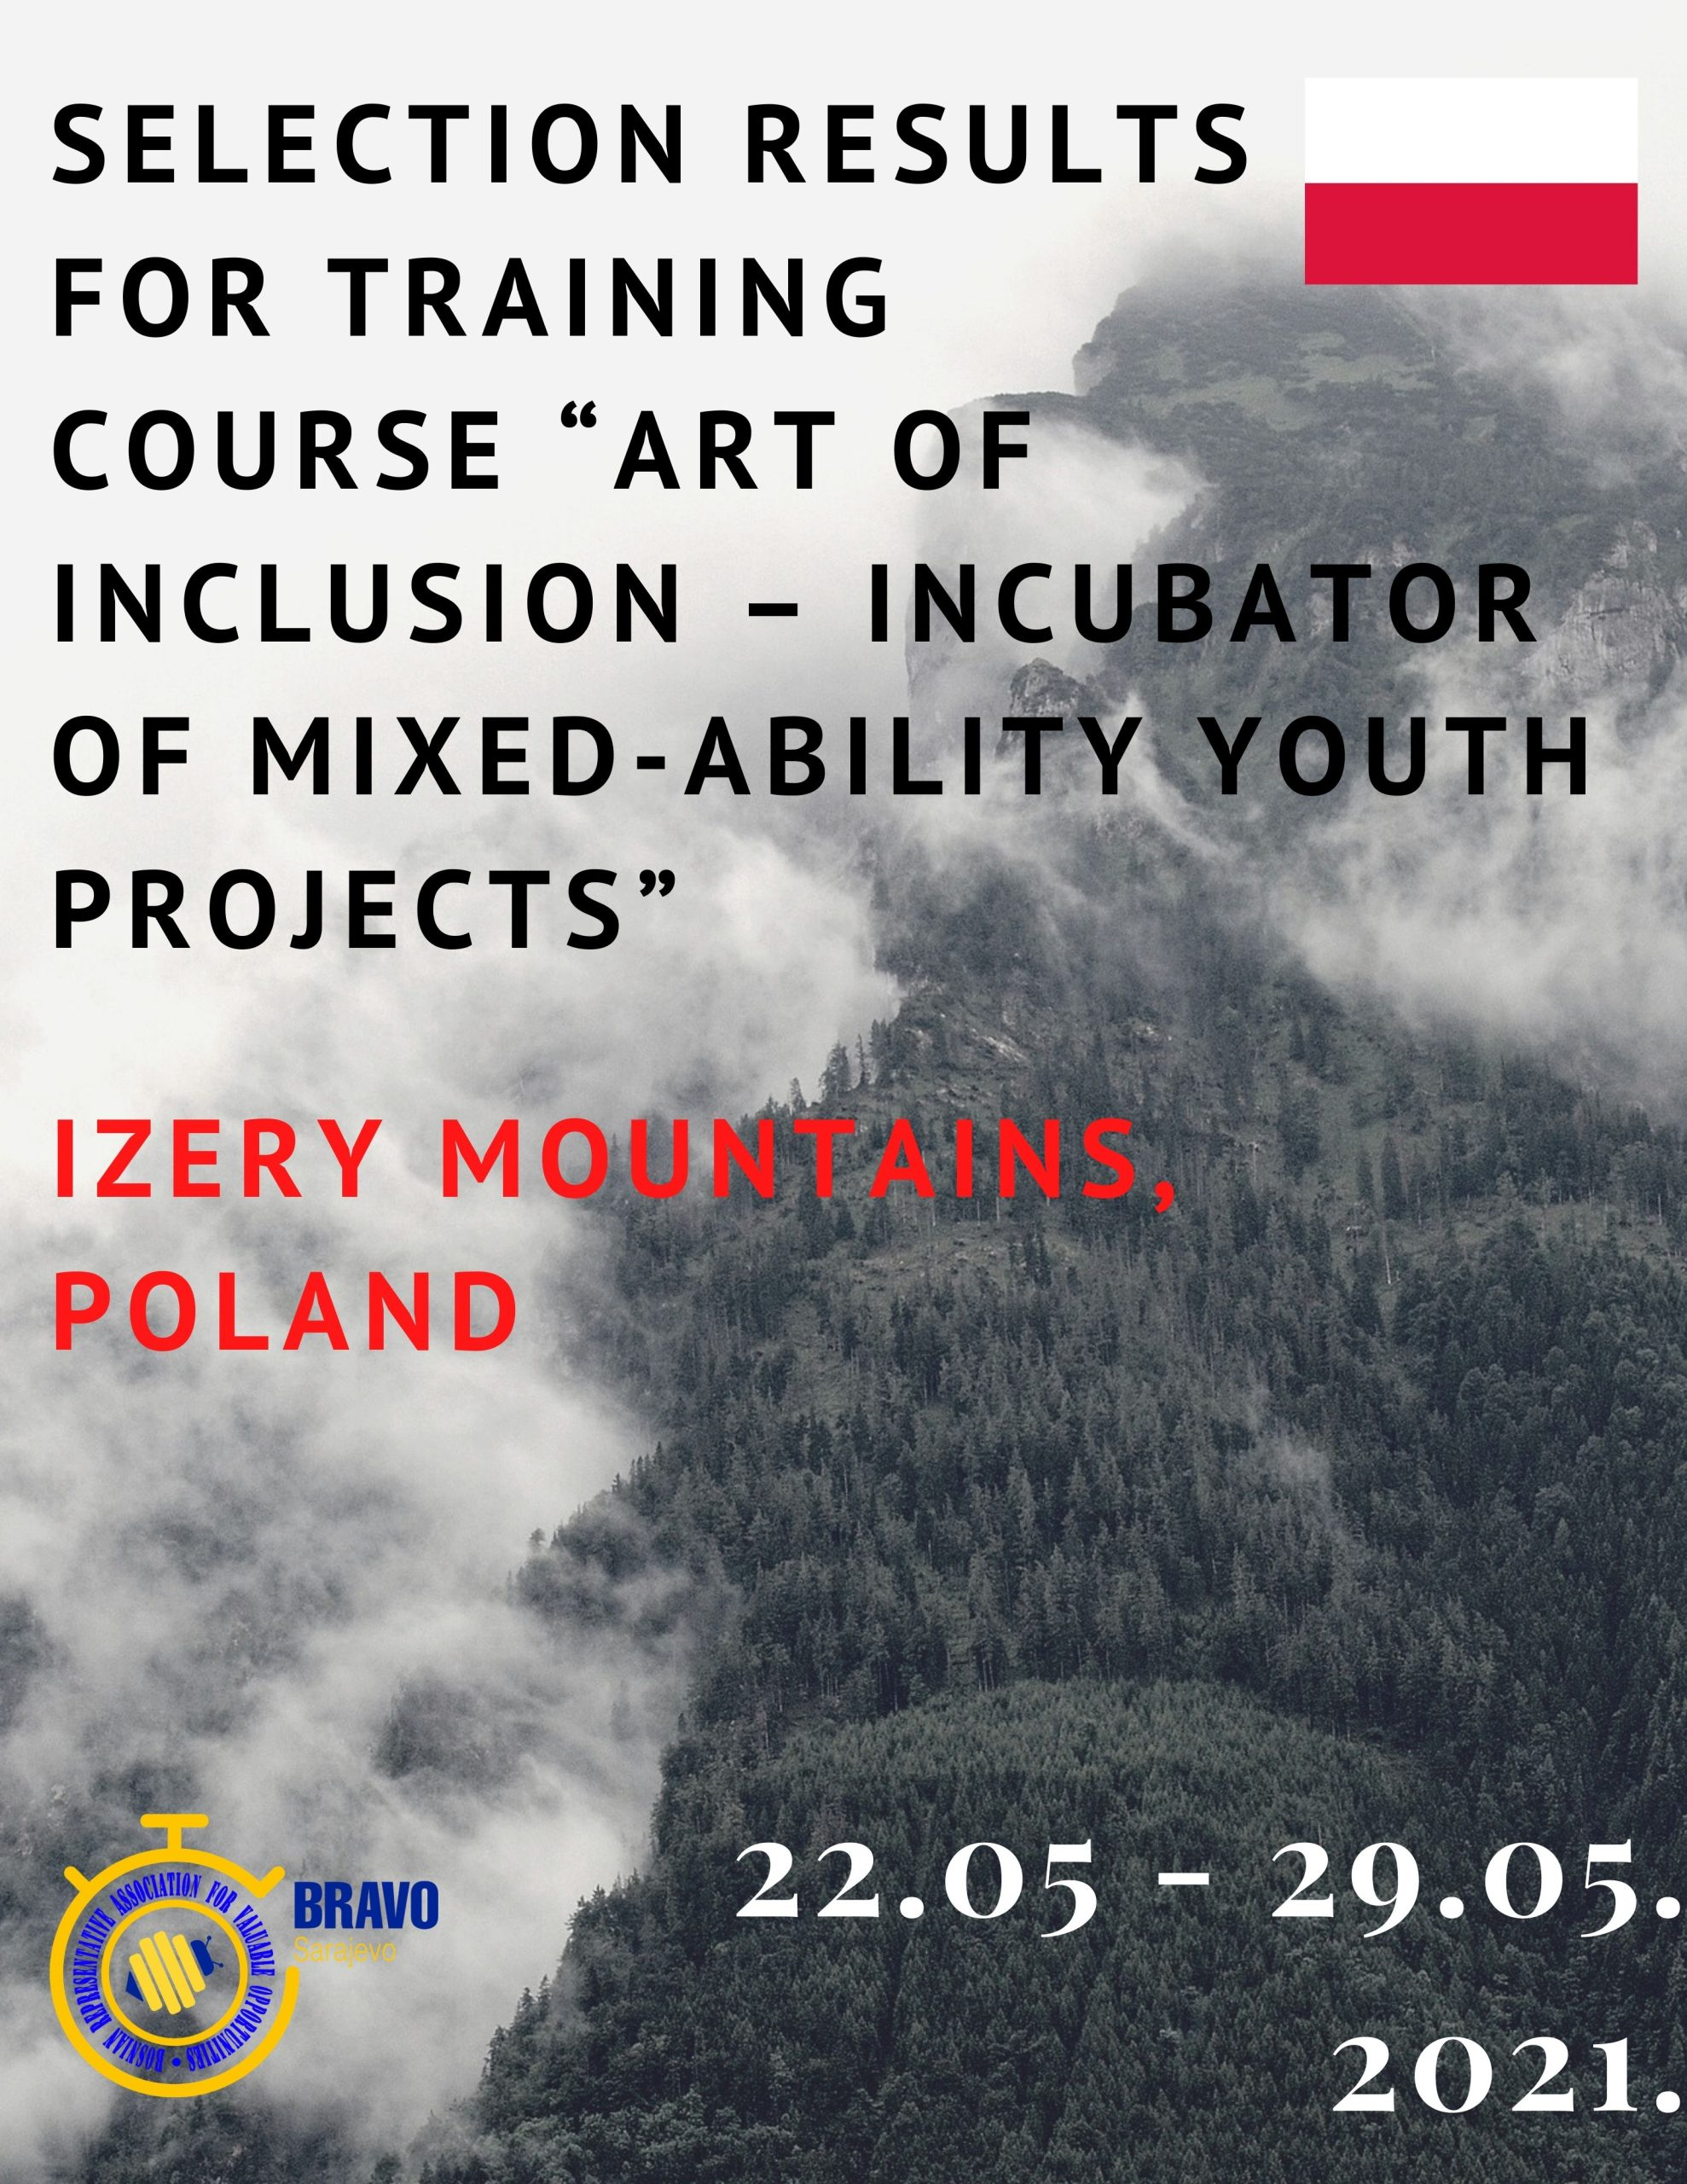 SELECTION RESULTS FOR TRAINING COURSE in Izery Mountains, POLAND